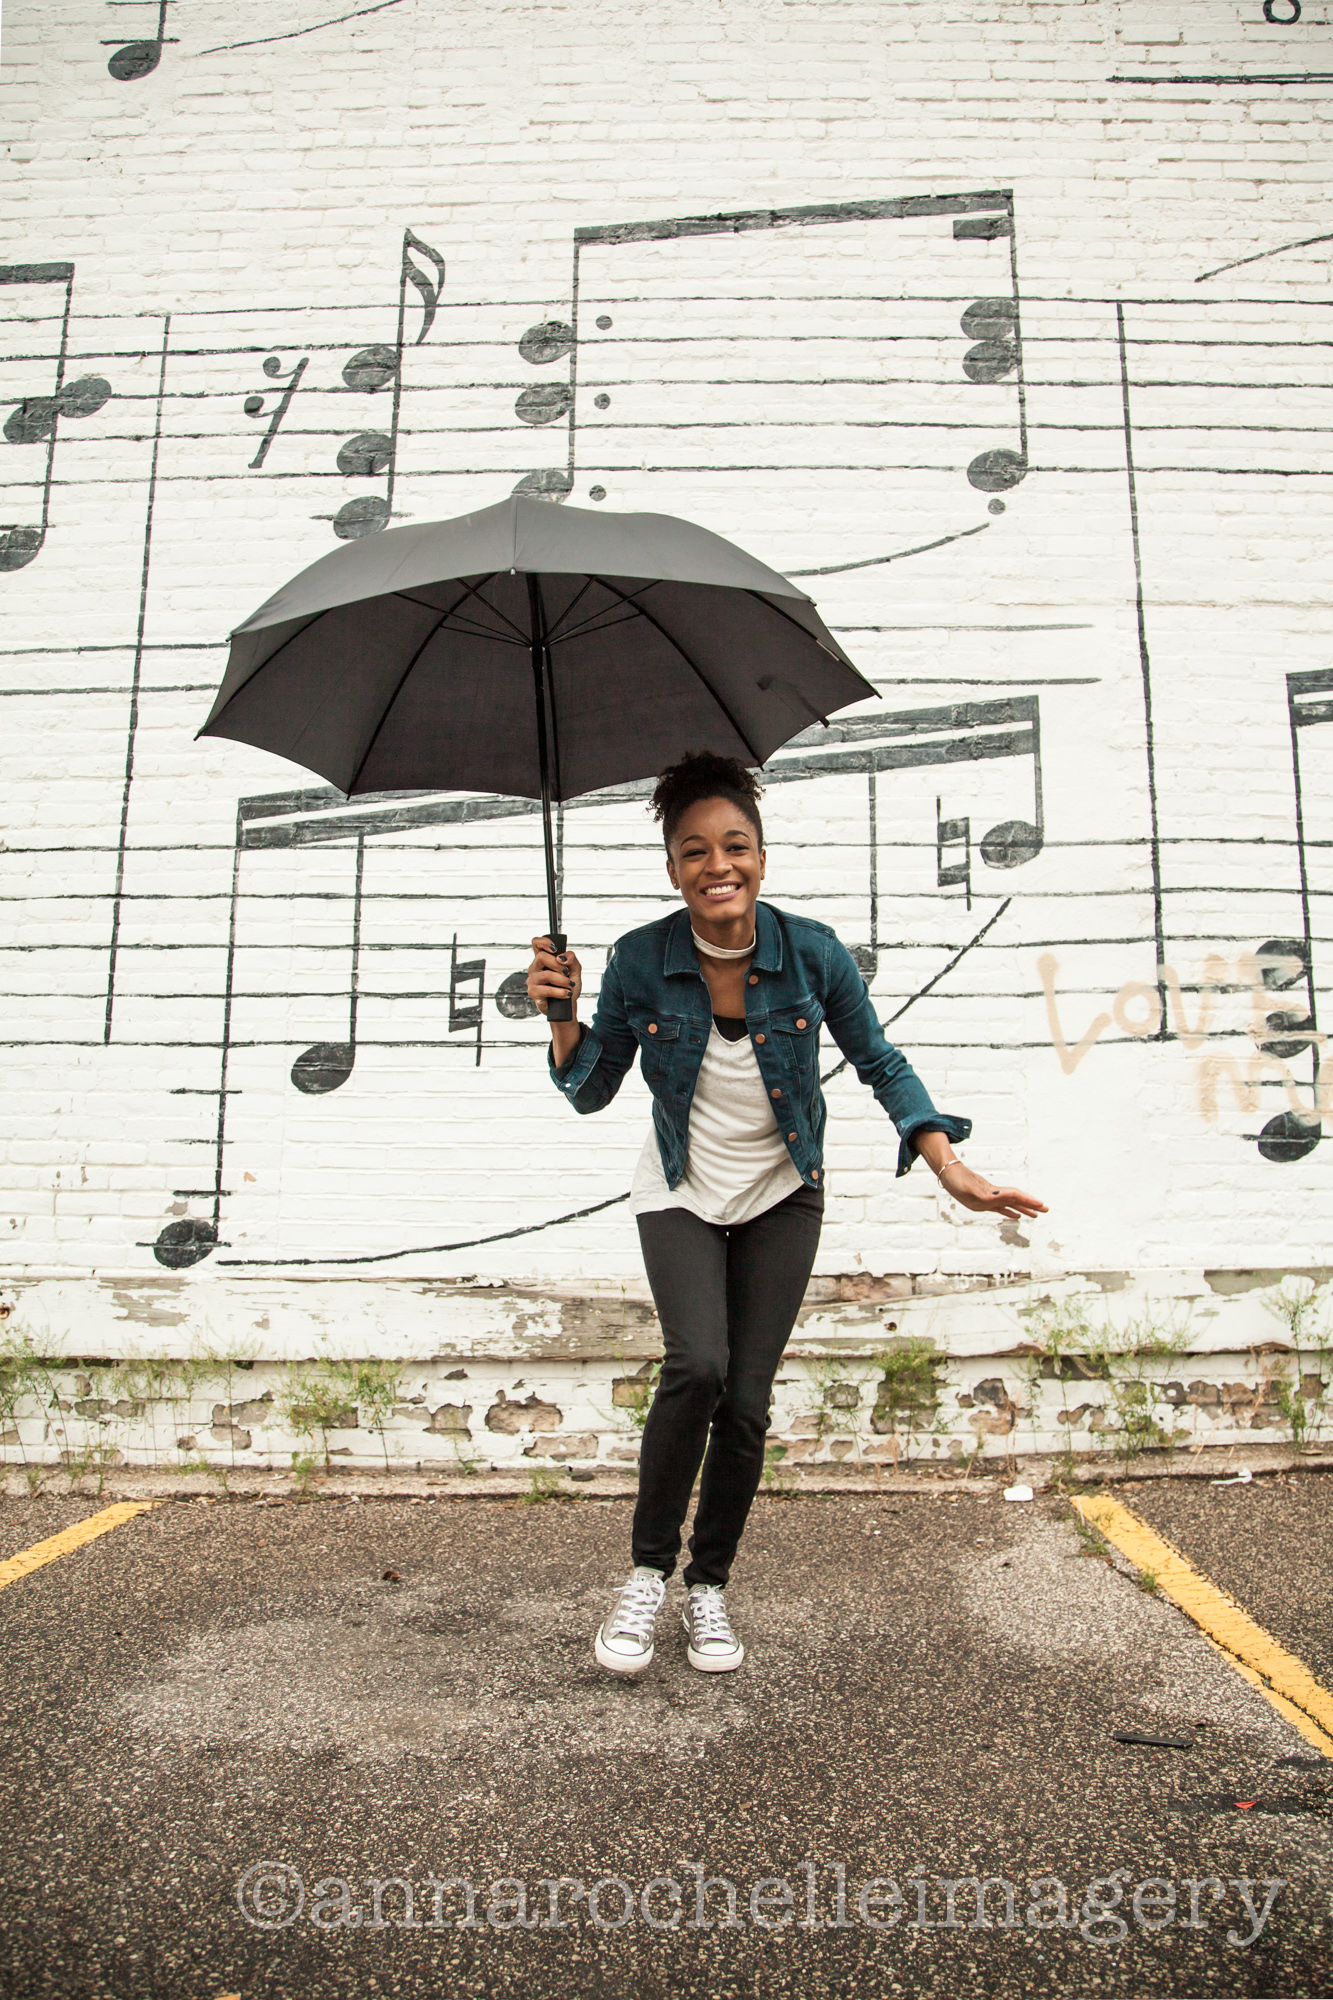 Minnesota-music-mural-portraits-prince-rainyday-seniors-creatives-anna rochelle imagery-5.jpg